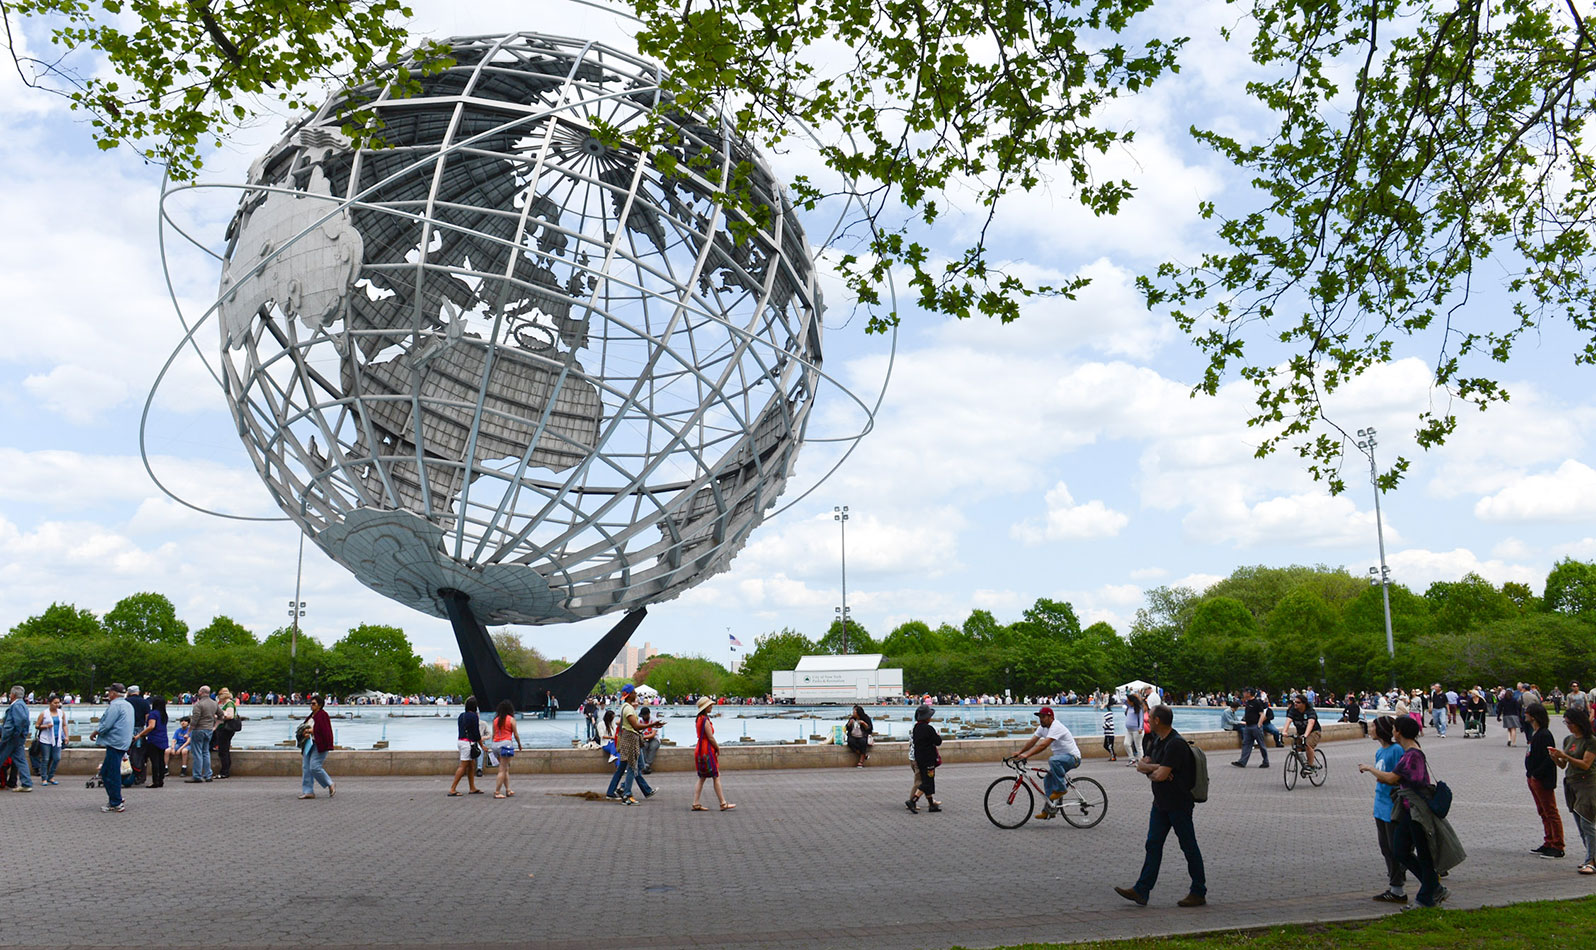 Make your visit one to remember! Take family photos at the Unisphere, a 350-ton globe made of steel and a star in the film Men in Black and the 1964-65 World's Fair.